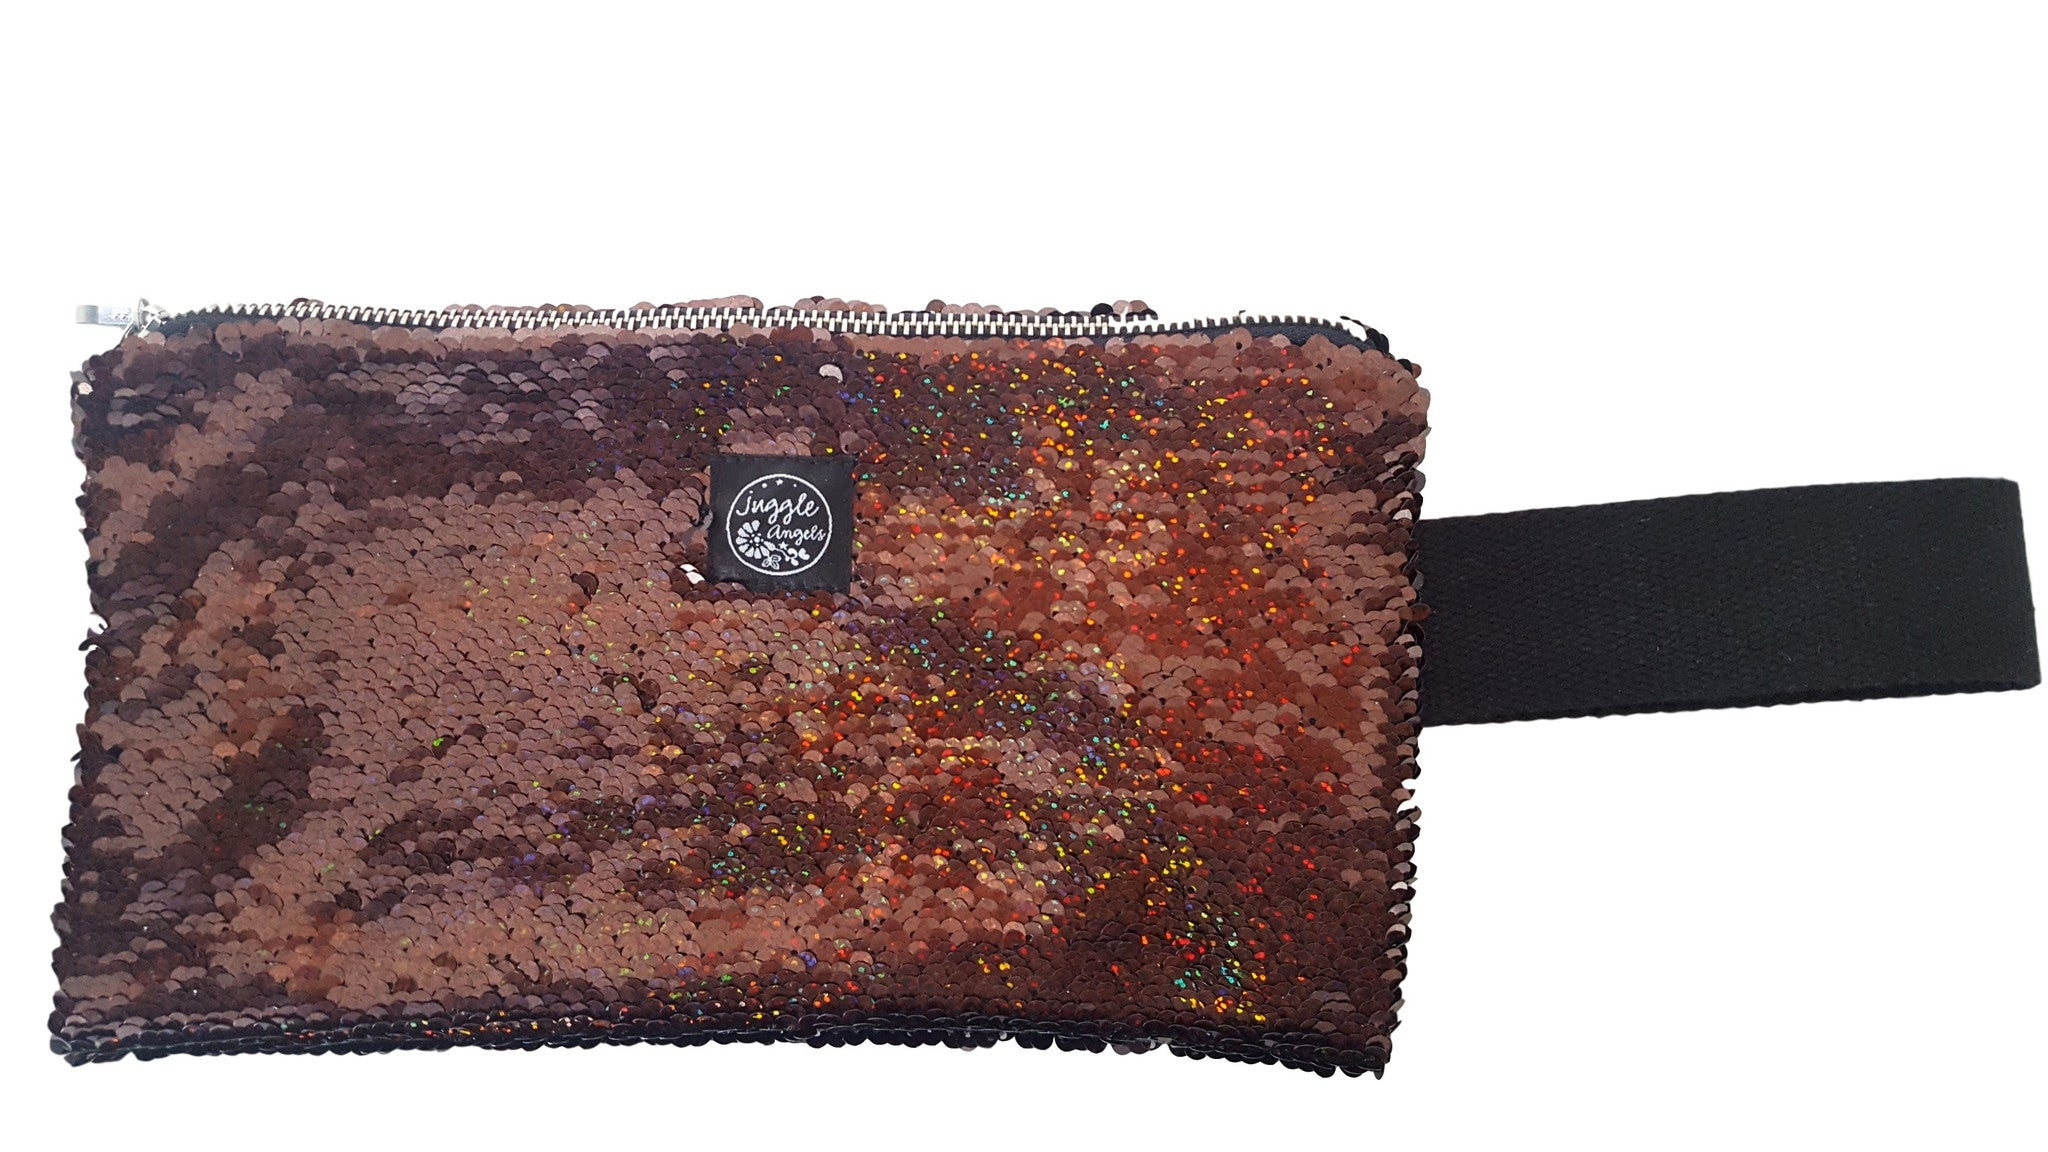 Brown Sequins Clutch Bag